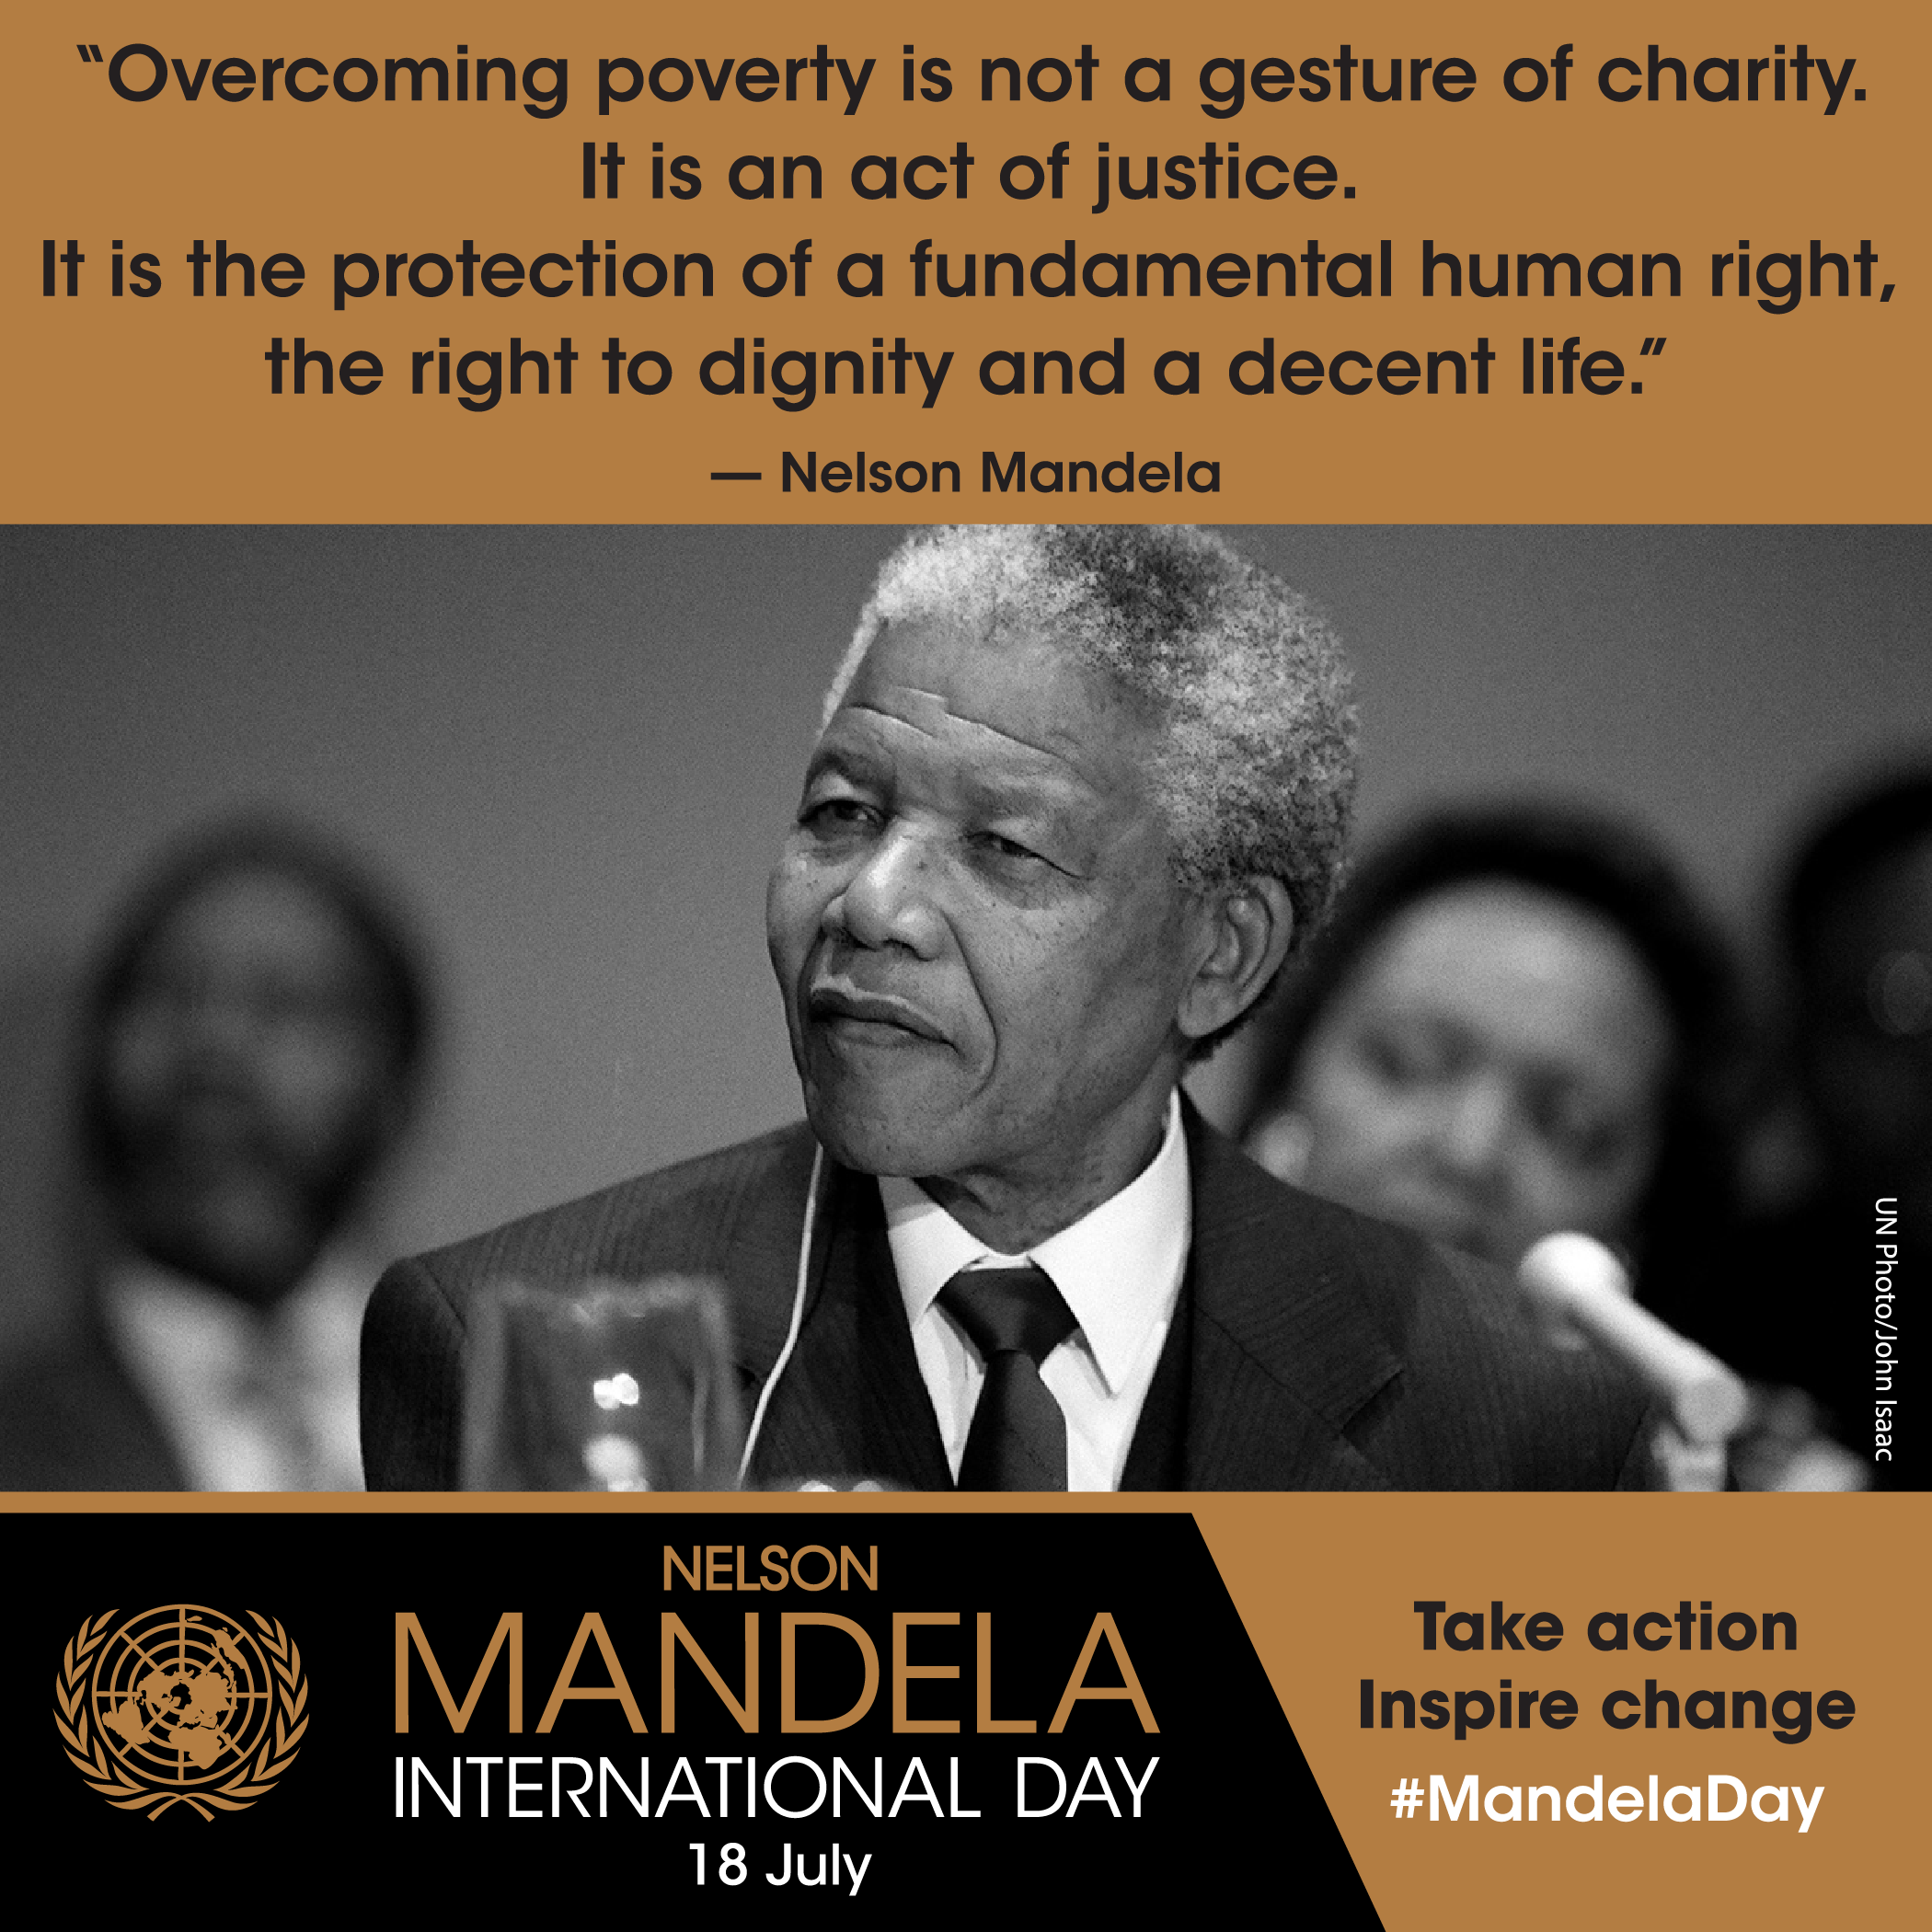 Nelson Mandela BRAND NEW poster South Africa Civil Rights Equality Freedom Quote